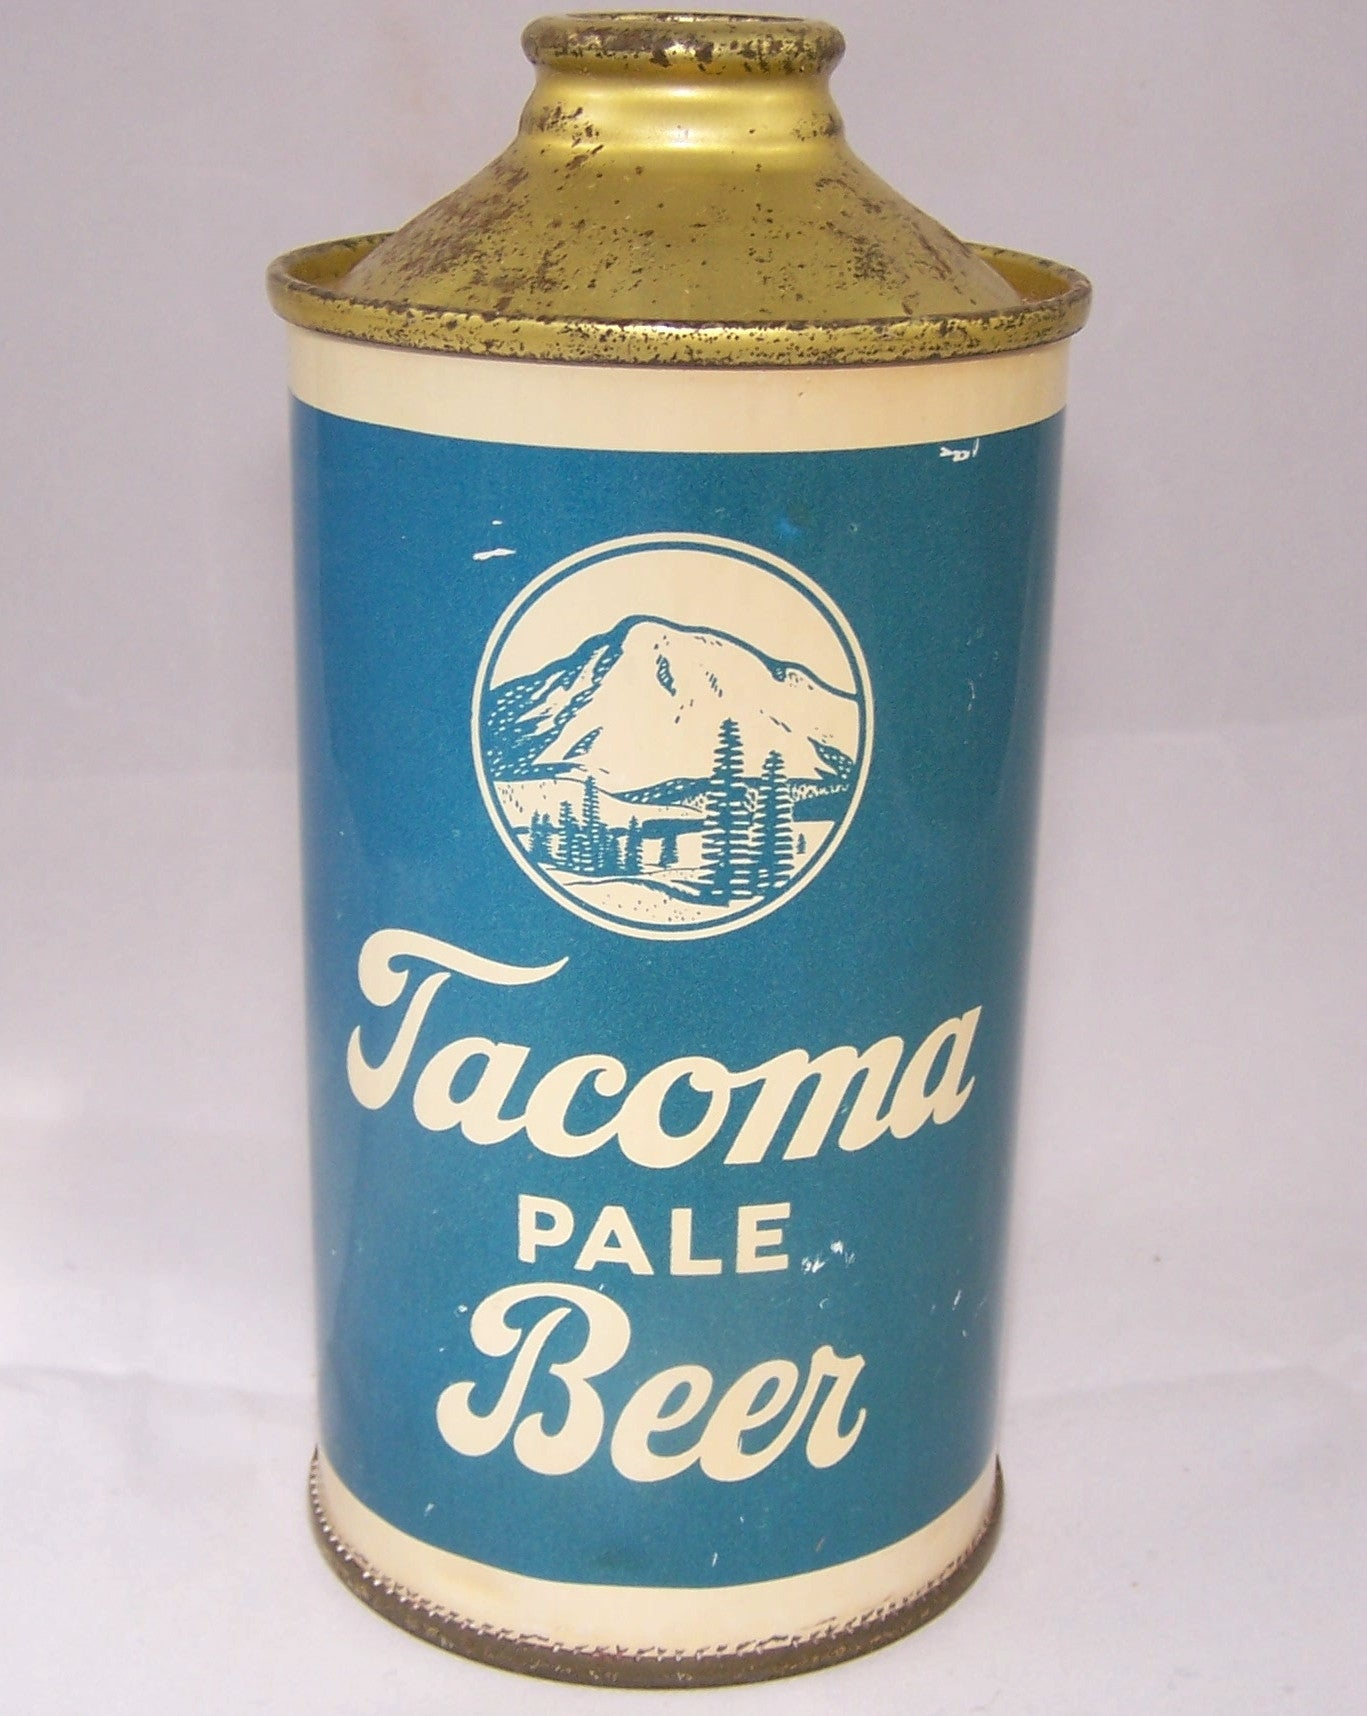 Tacoma Pale Beer, USBC 186-19, Grade 1 Sold on 05/08/16